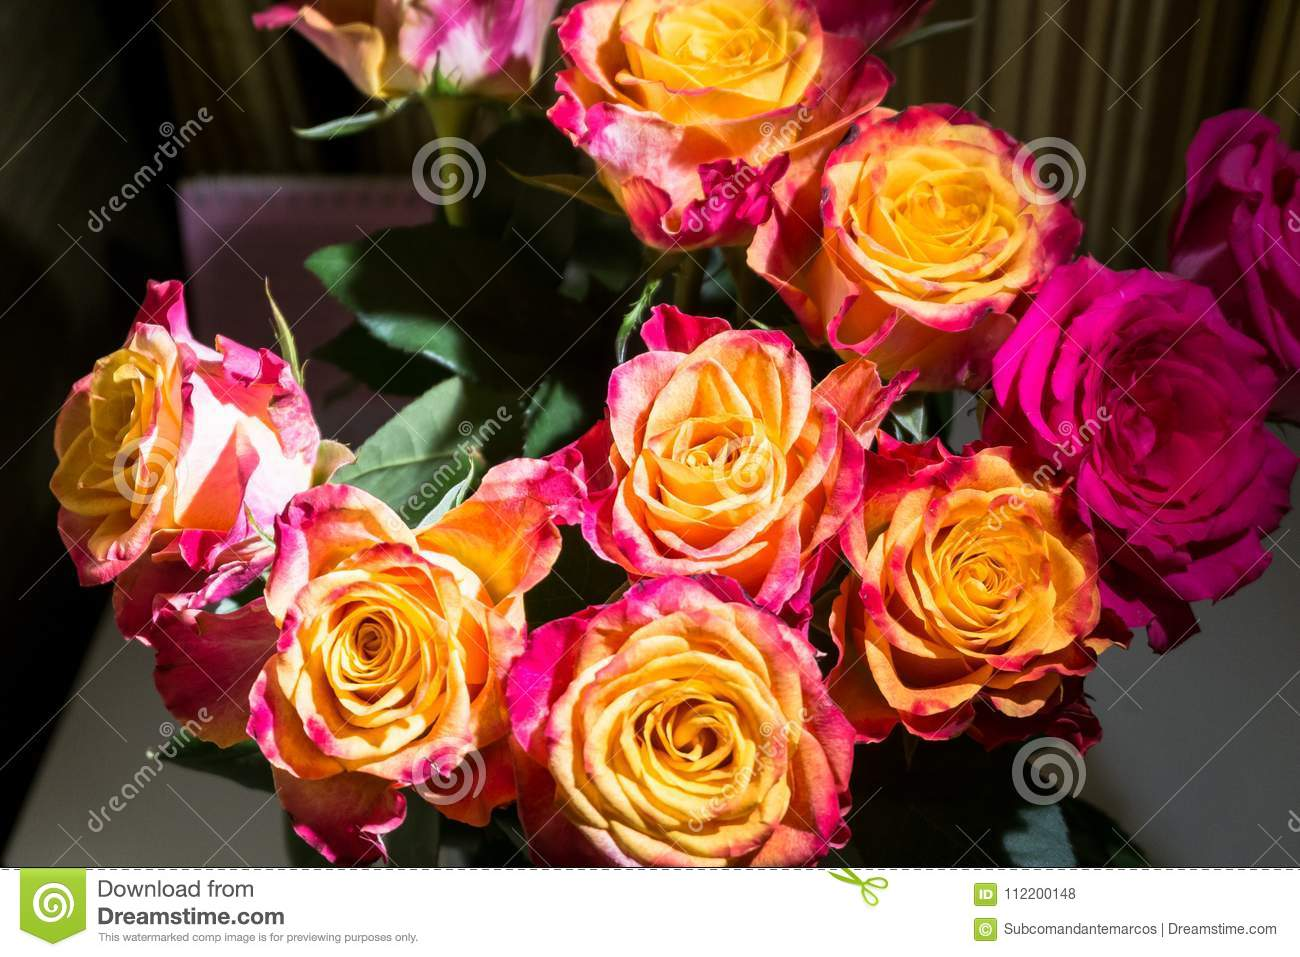 Close-up of festive fresh rose with original yellow and crimson coloration.